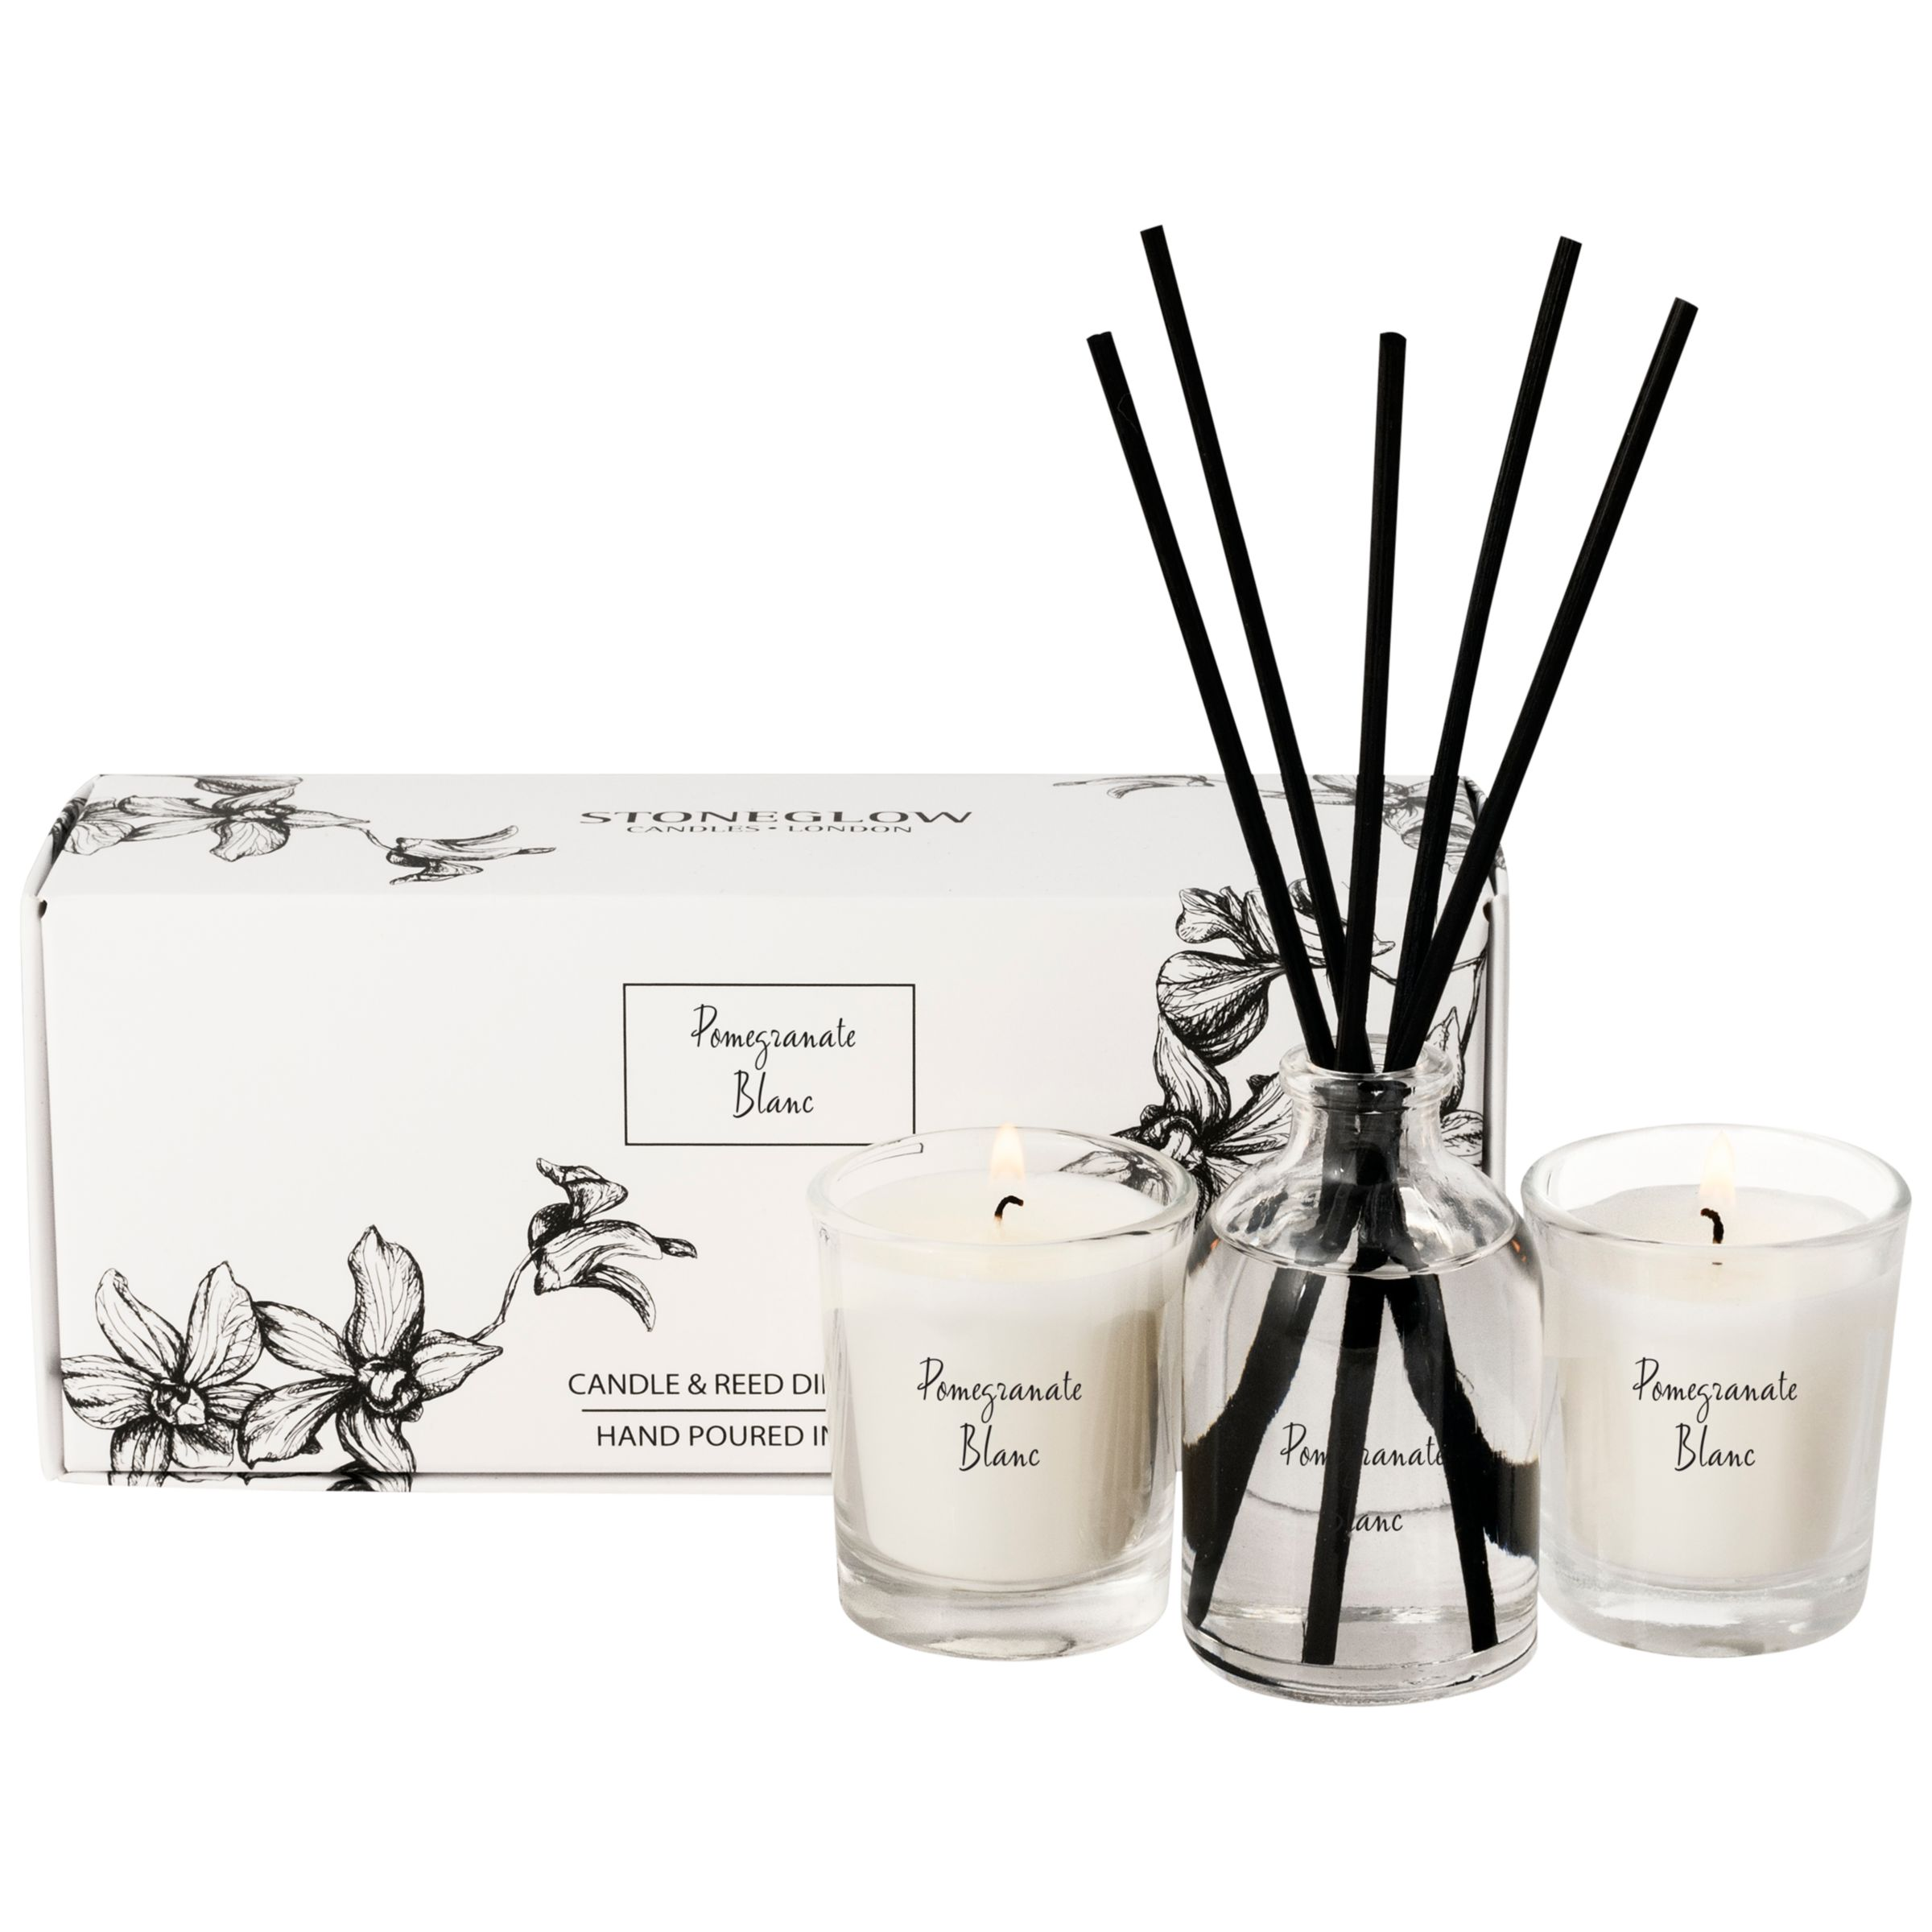 Stoneglow Stoneglow Scented Candles and Diffuser Gift Set, New Pomegranate